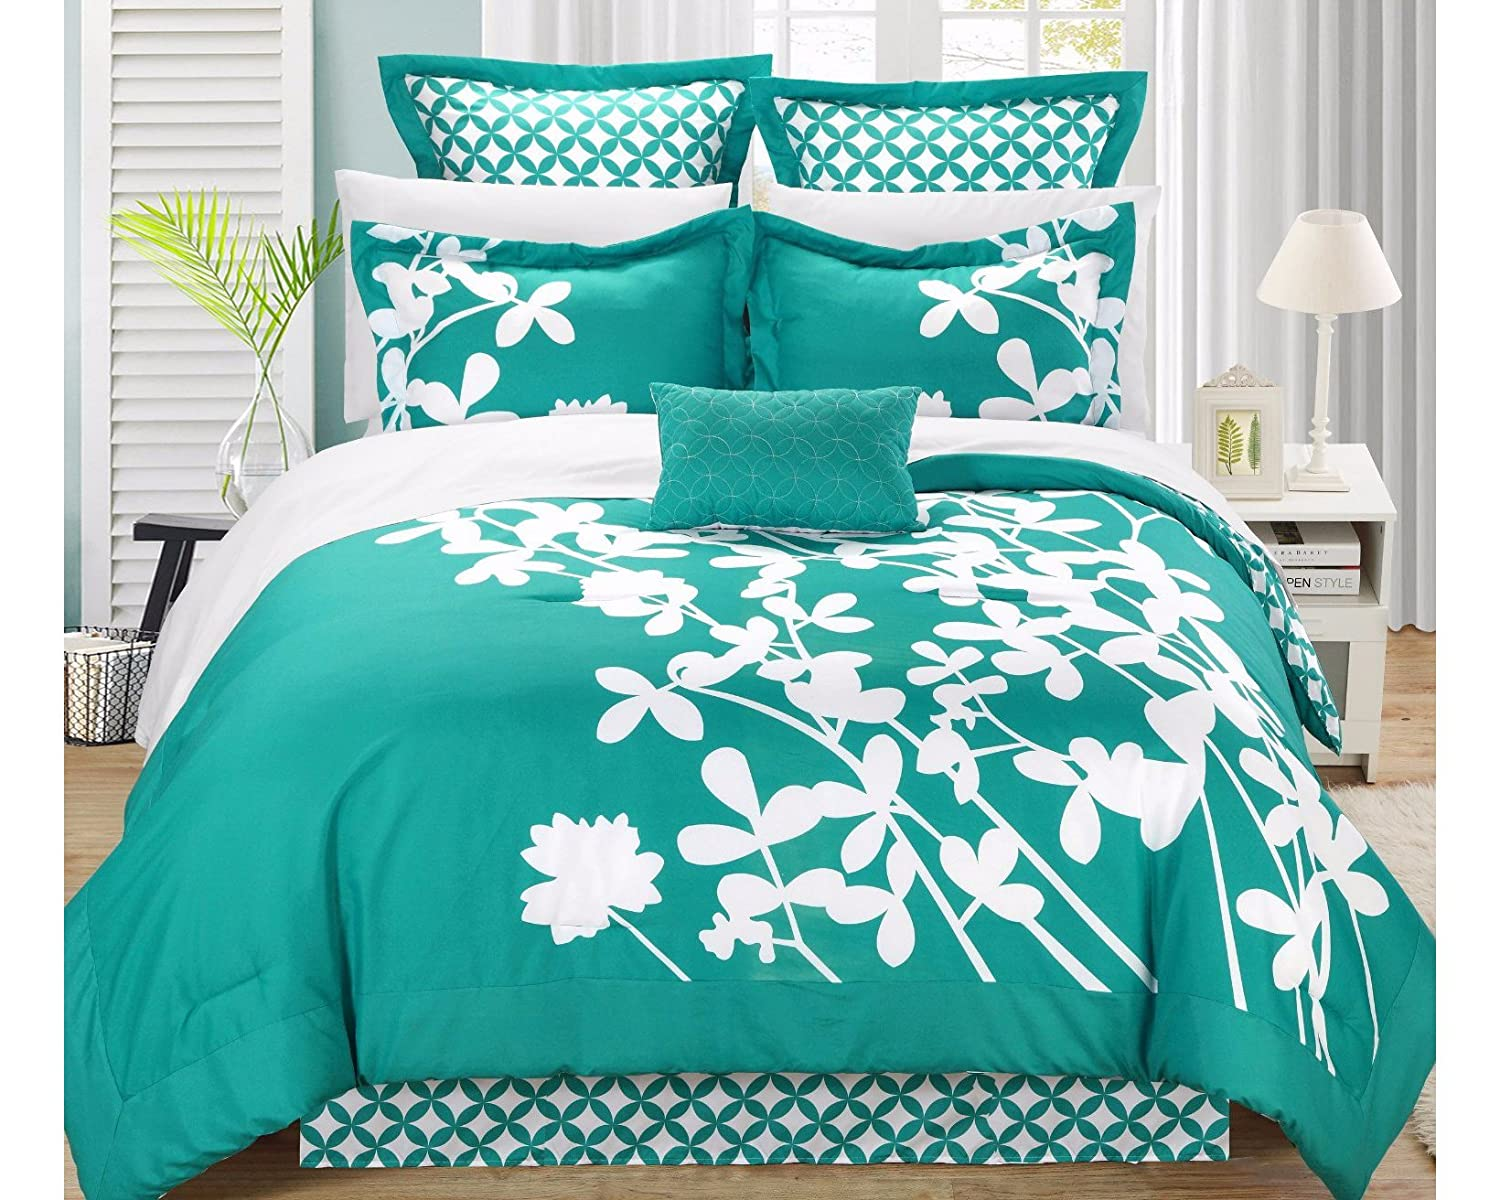 Amazon.com: Iris 11 Piece Comforter Set King Size, Turquoise; Sheet Set,  Bedskirt, Four Shams And Decorative Pillow Included: Home U0026 Kitchen